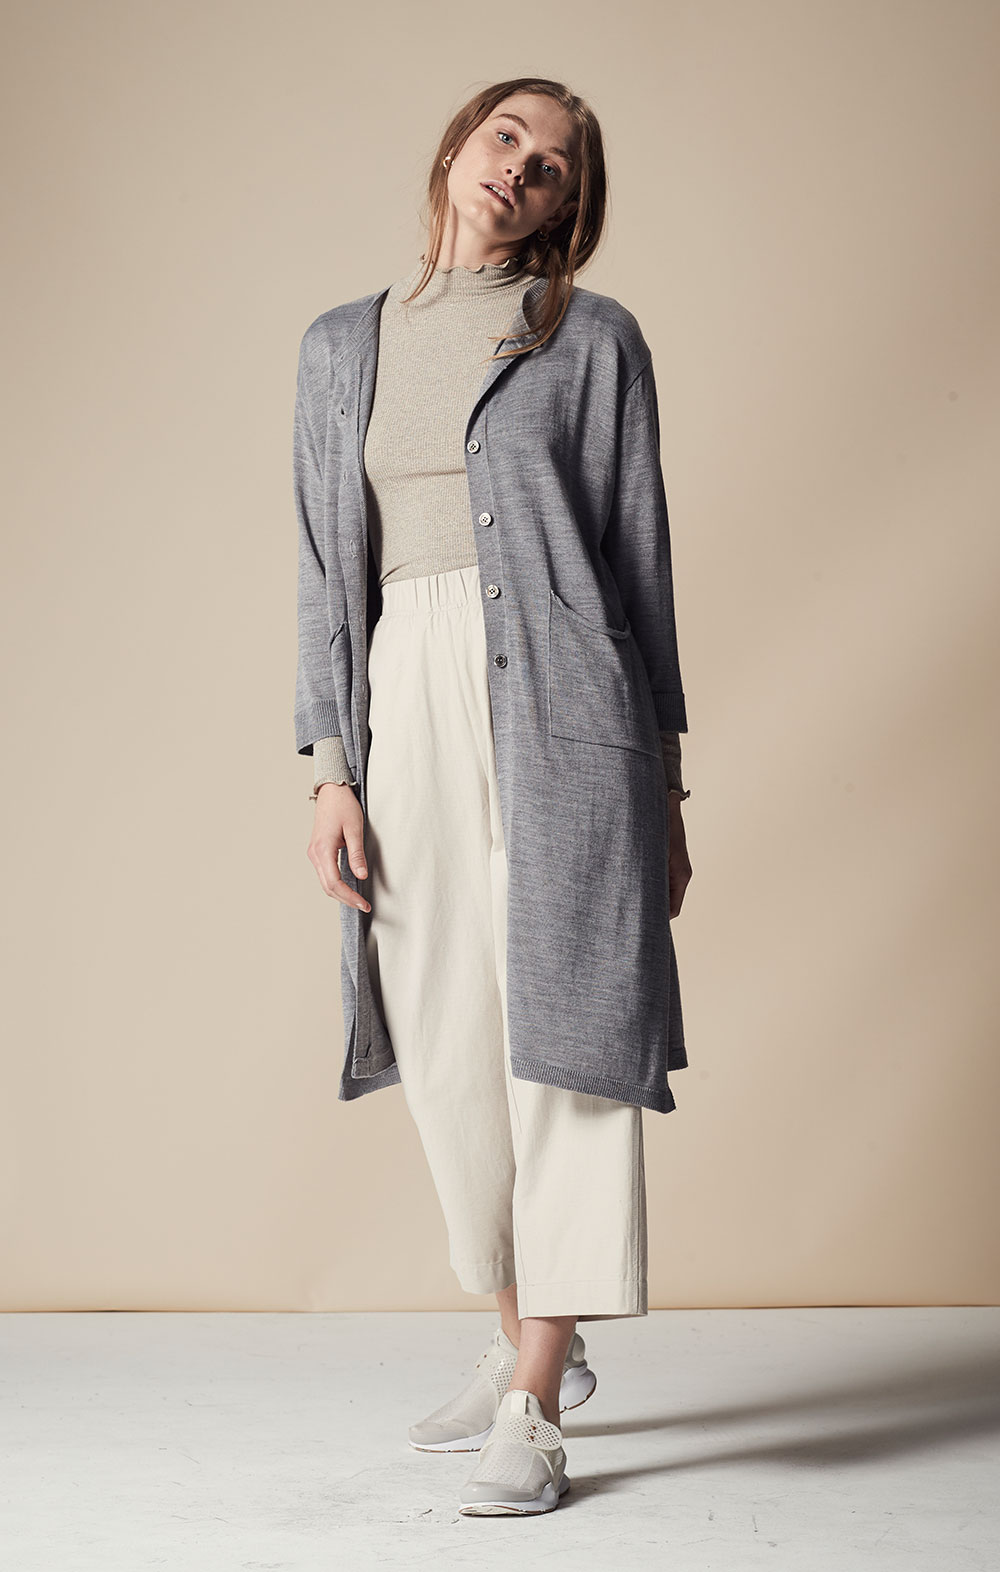 Cashmere-blend Side Slit Cardigan FBK010-GRY Elastic Waist Washed Cotton Pants FBP042-CRM